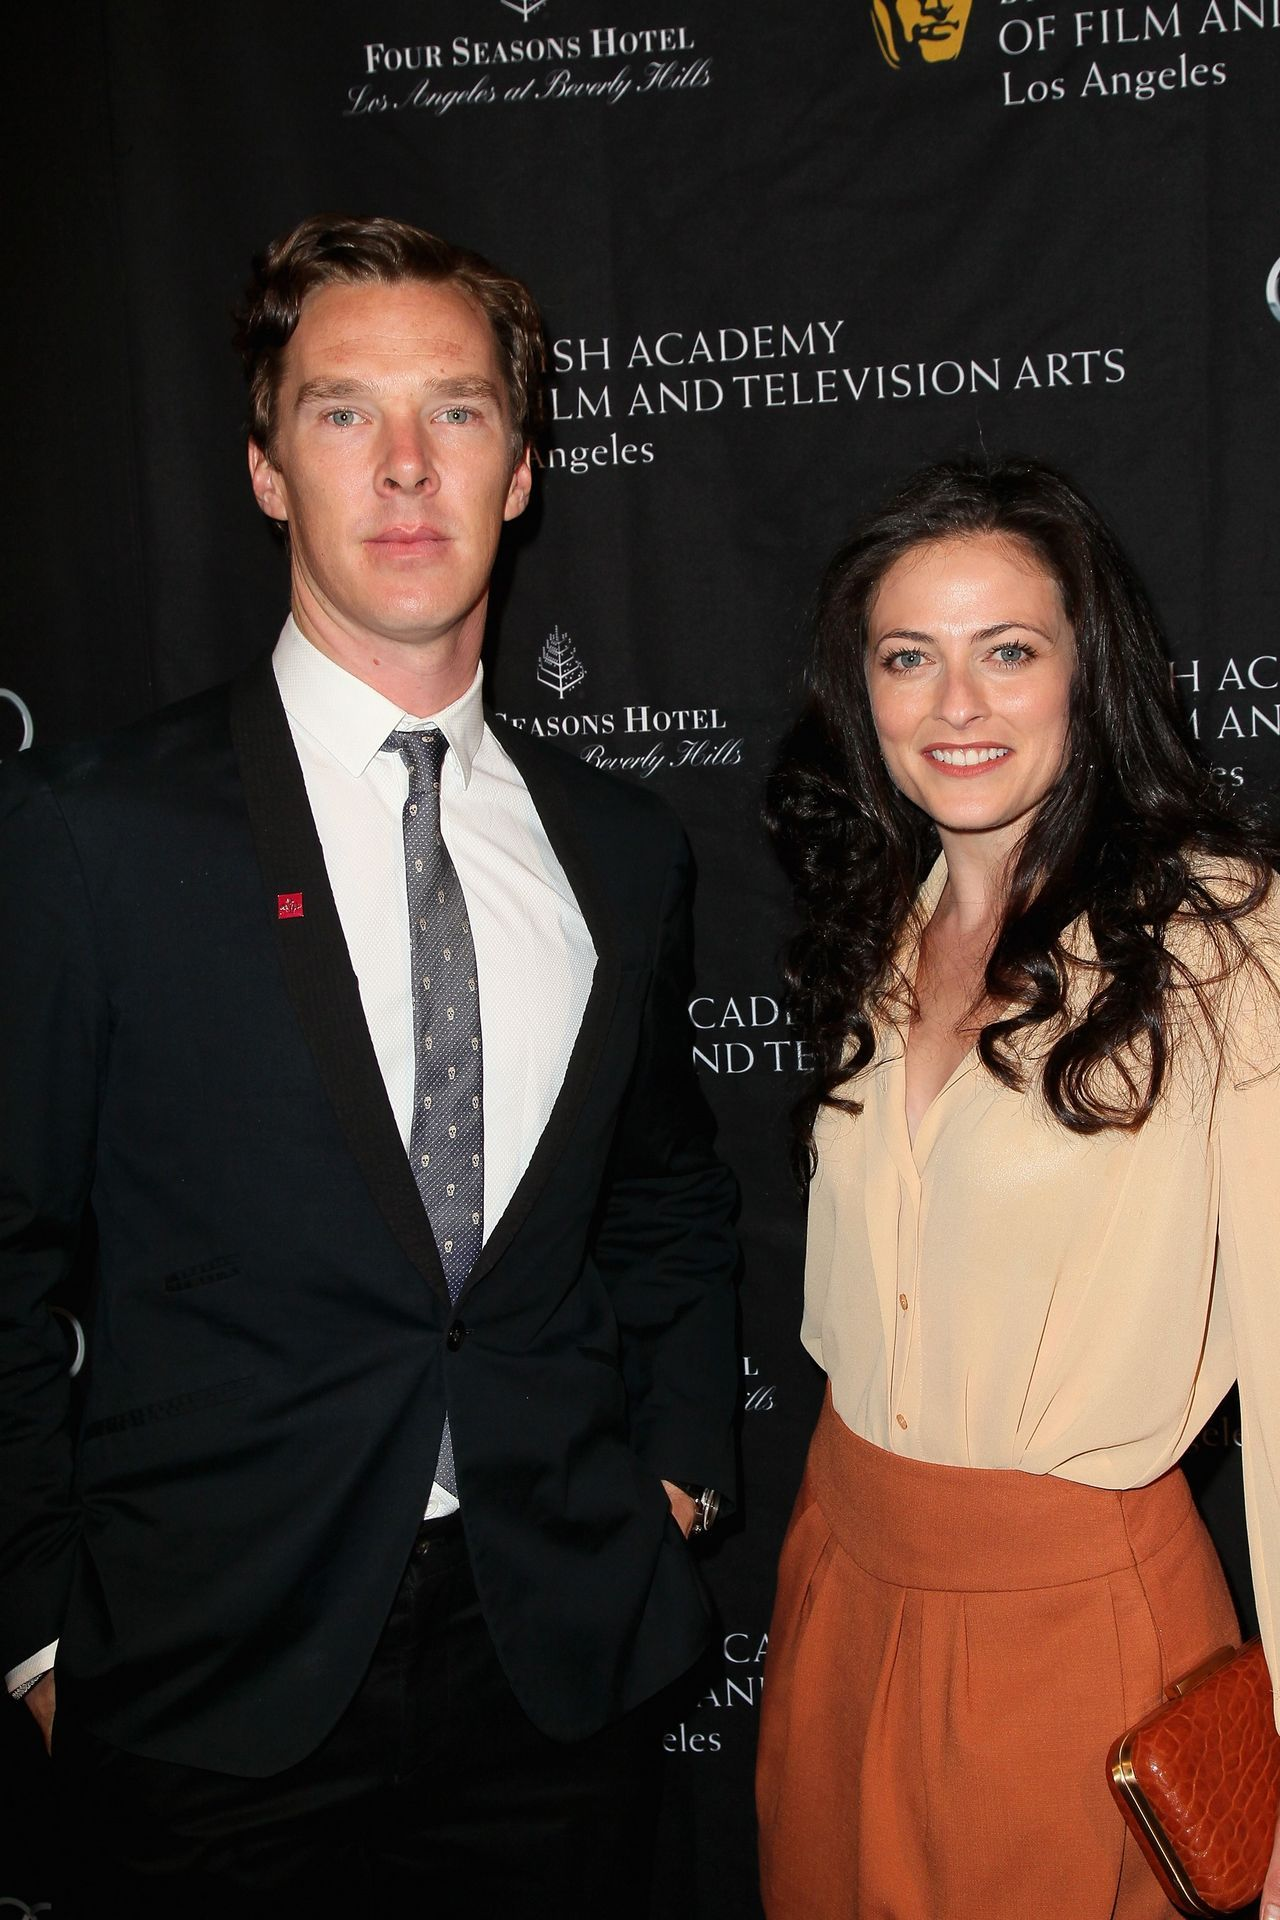 Benedict Cumberbatch and Lara Pulver arrive at the BAFTA Los Angeles 2013 Awards Season Tea Party held at the Four Seasons Hotel Los Angeles on January 12, 2013 in Los Angeles, California.